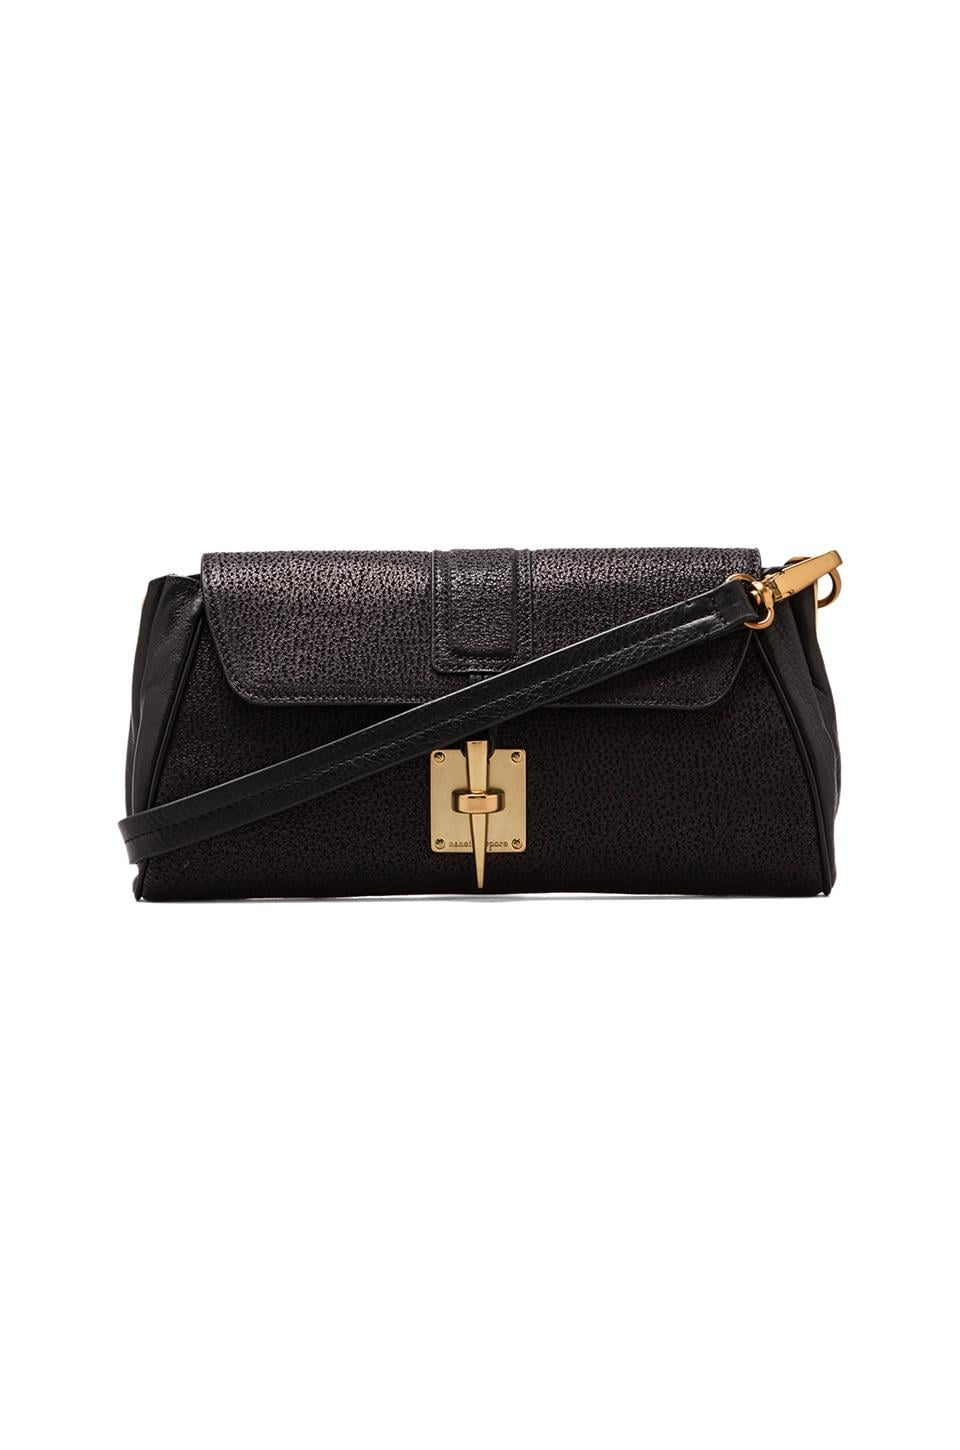 Nanette Lepore Man Hunter Clutch in Black/Gold